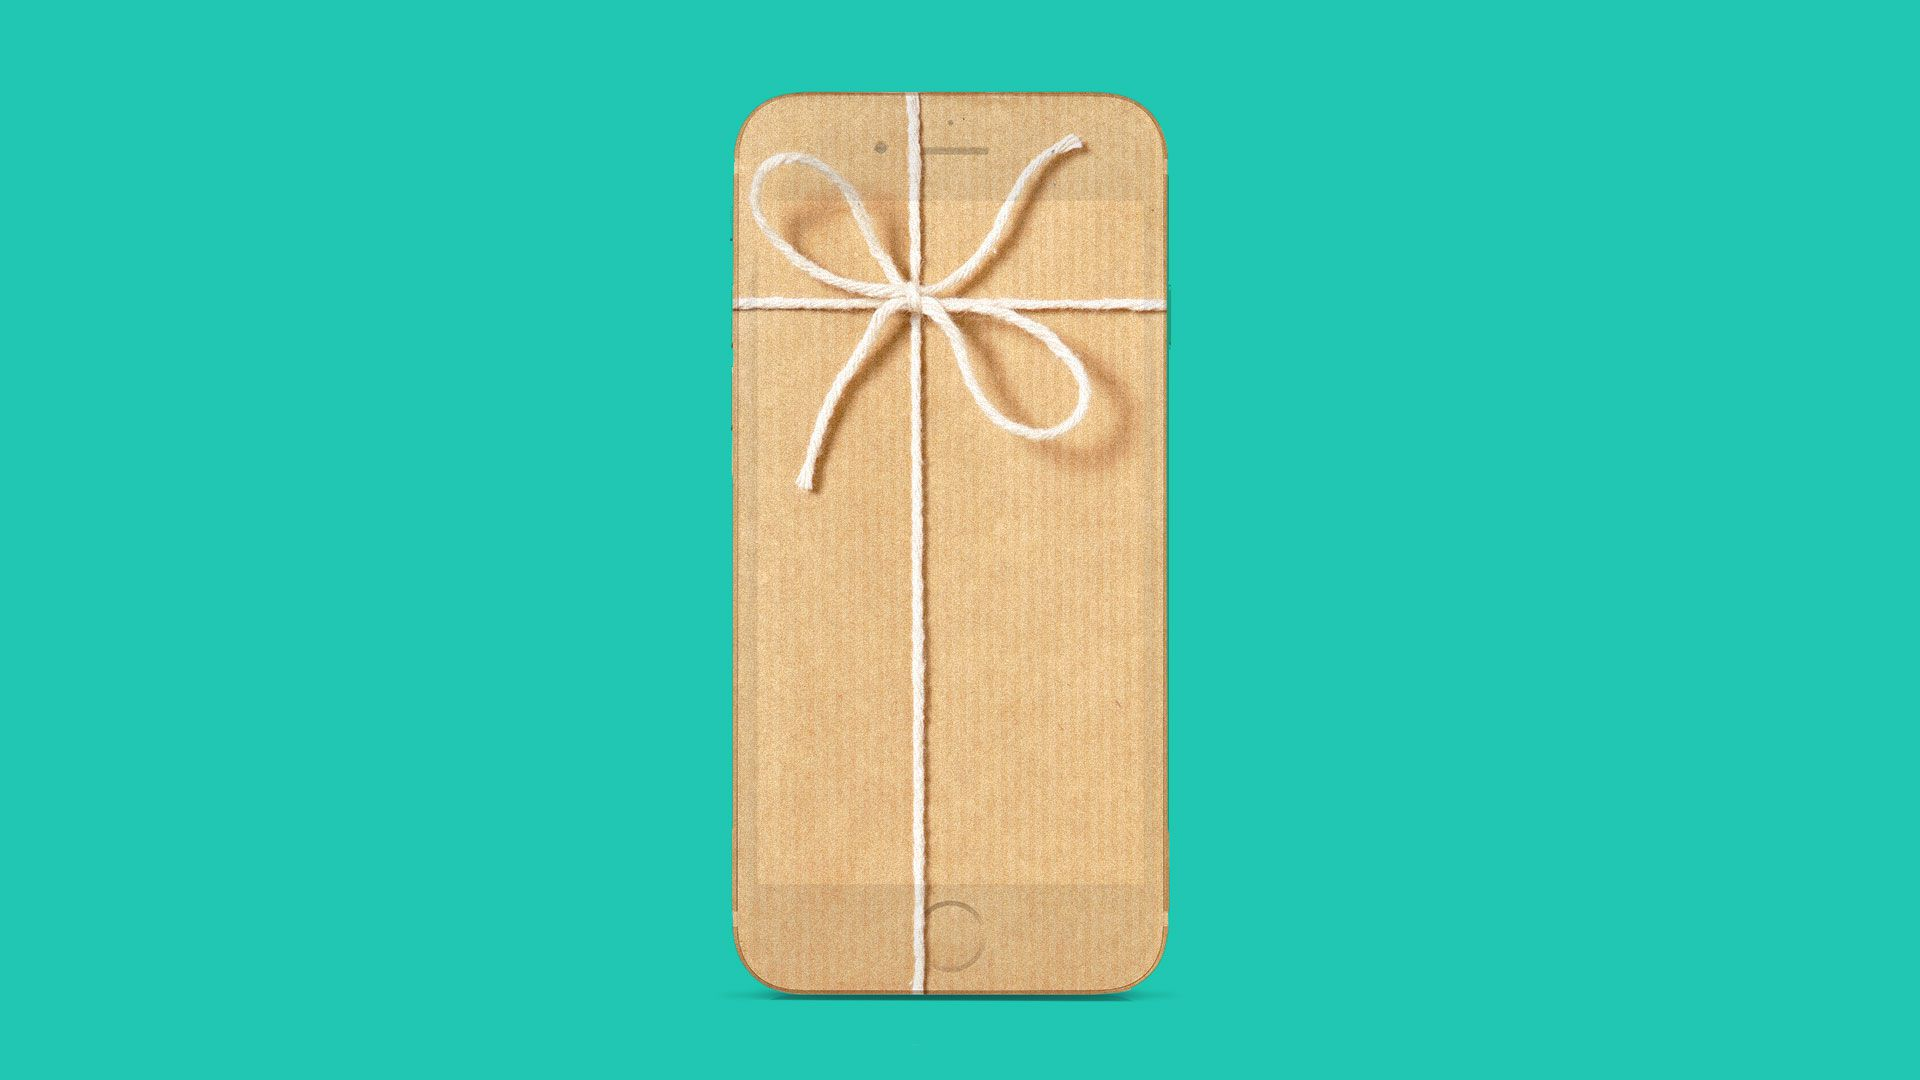 iphone as a gift illustration